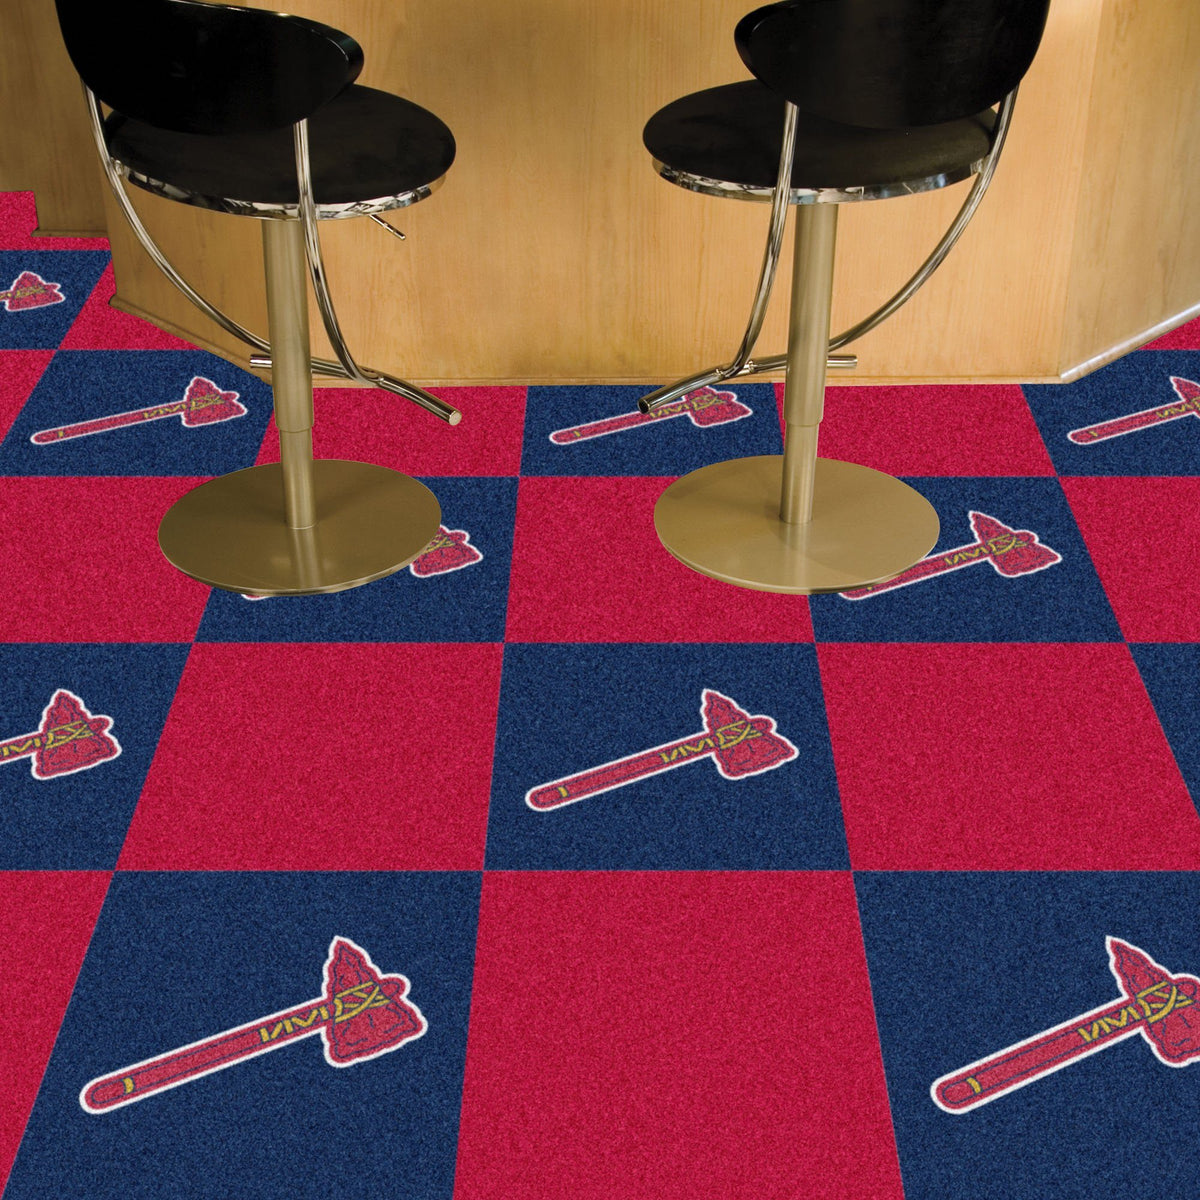 MLB - Team Carpet Tiles MLB Mats, Carpet Tile Flooring, Team Carpet Tiles, MLB, Home Fan Mats Atlanta Braves 2